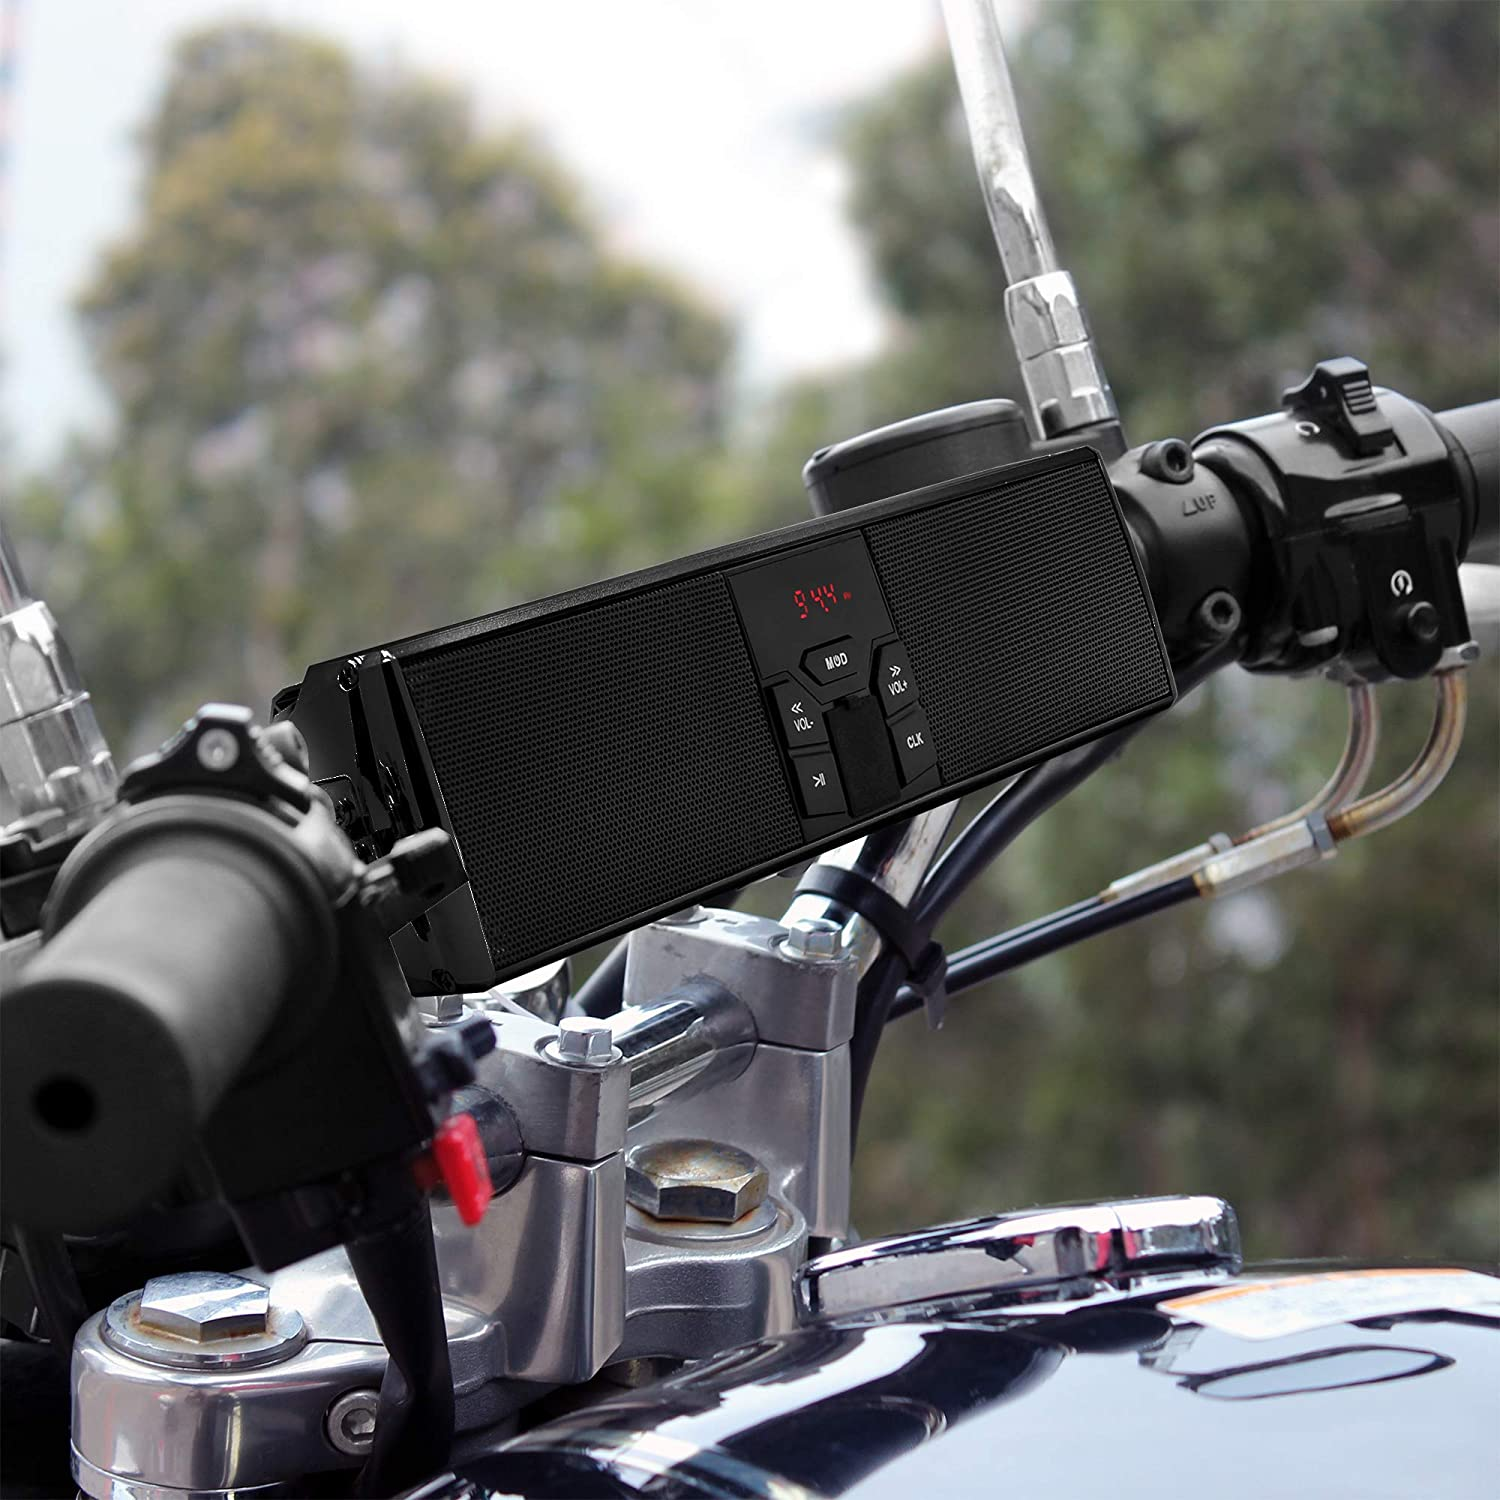 GoldenHawk RE9-X Waterproof Bluetooth Wireless Motorcycle Stereo Speakers 7//8-1.25 in USB AUX-in Handlebar Mount MP3 Music Player Audio Amplifier System Scooter Bike ATV UTV FM Radio